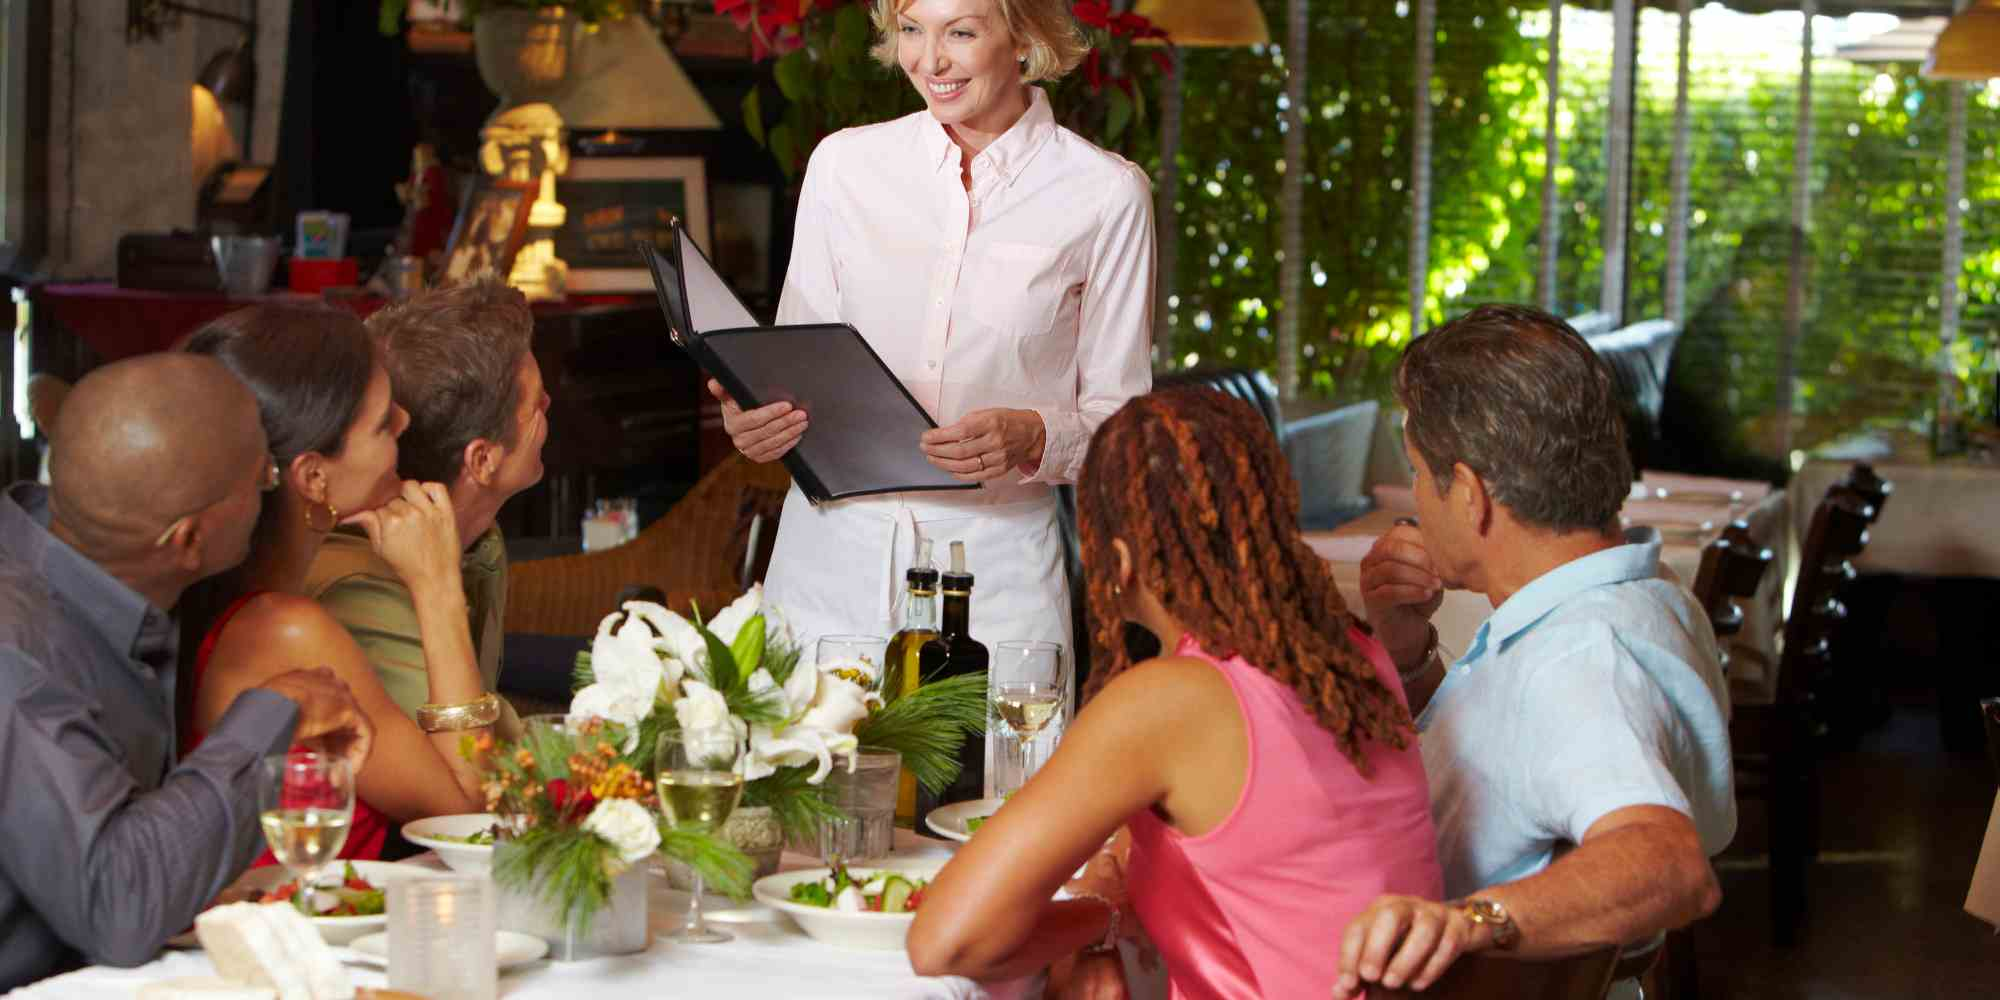 Reputation Management for restaurants